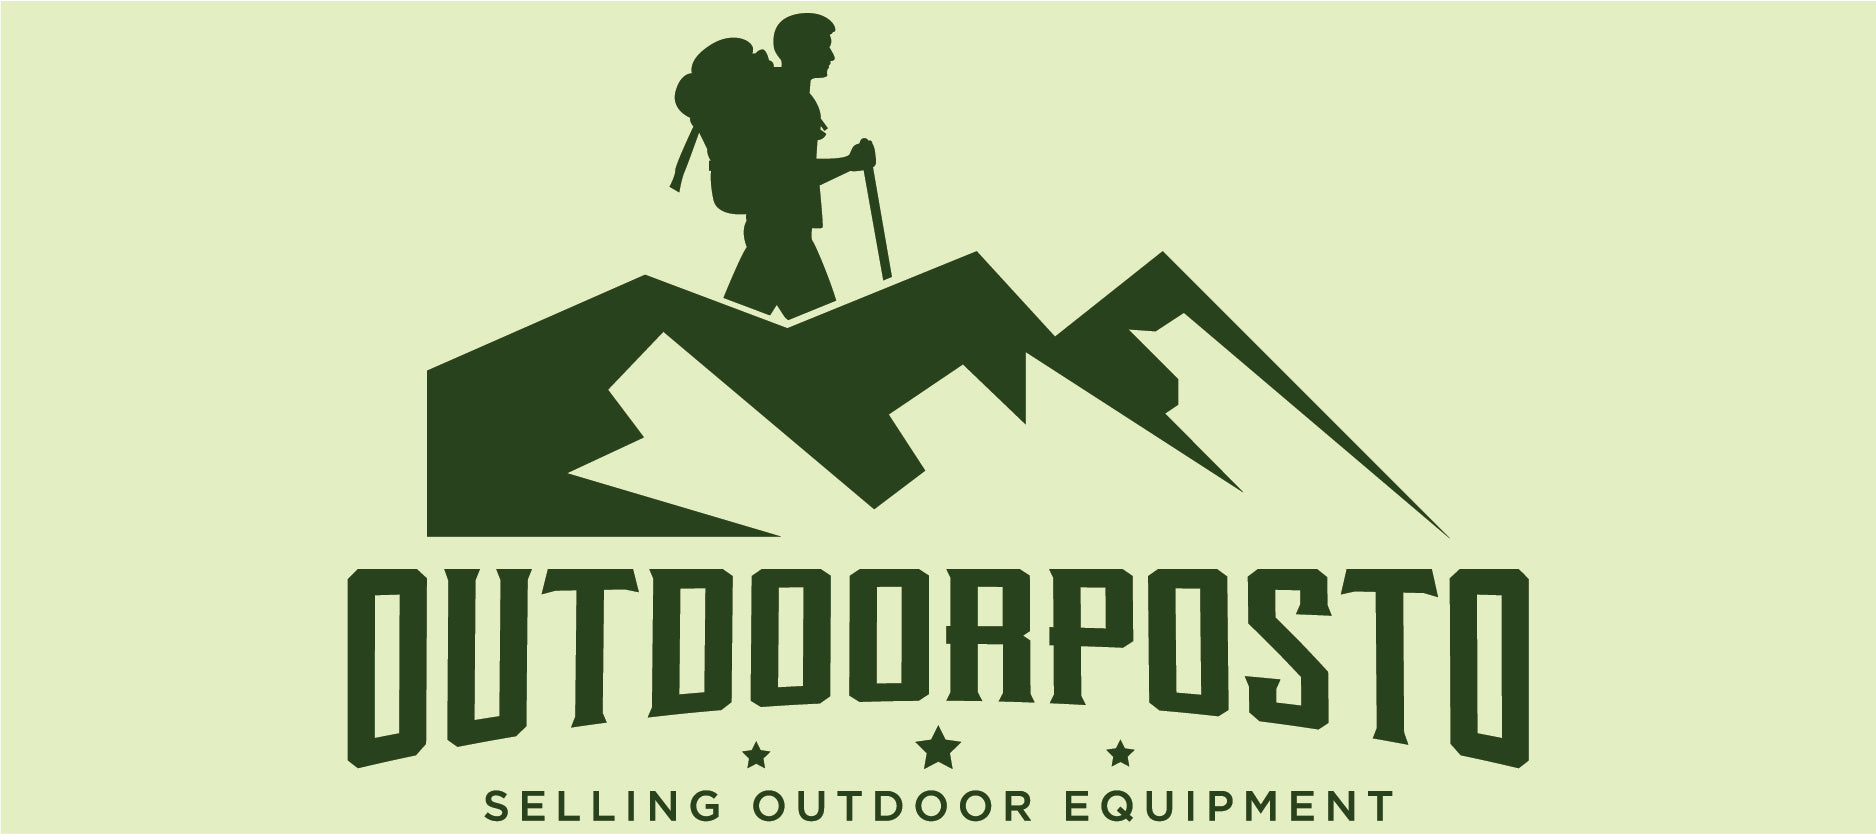 outdoorposto